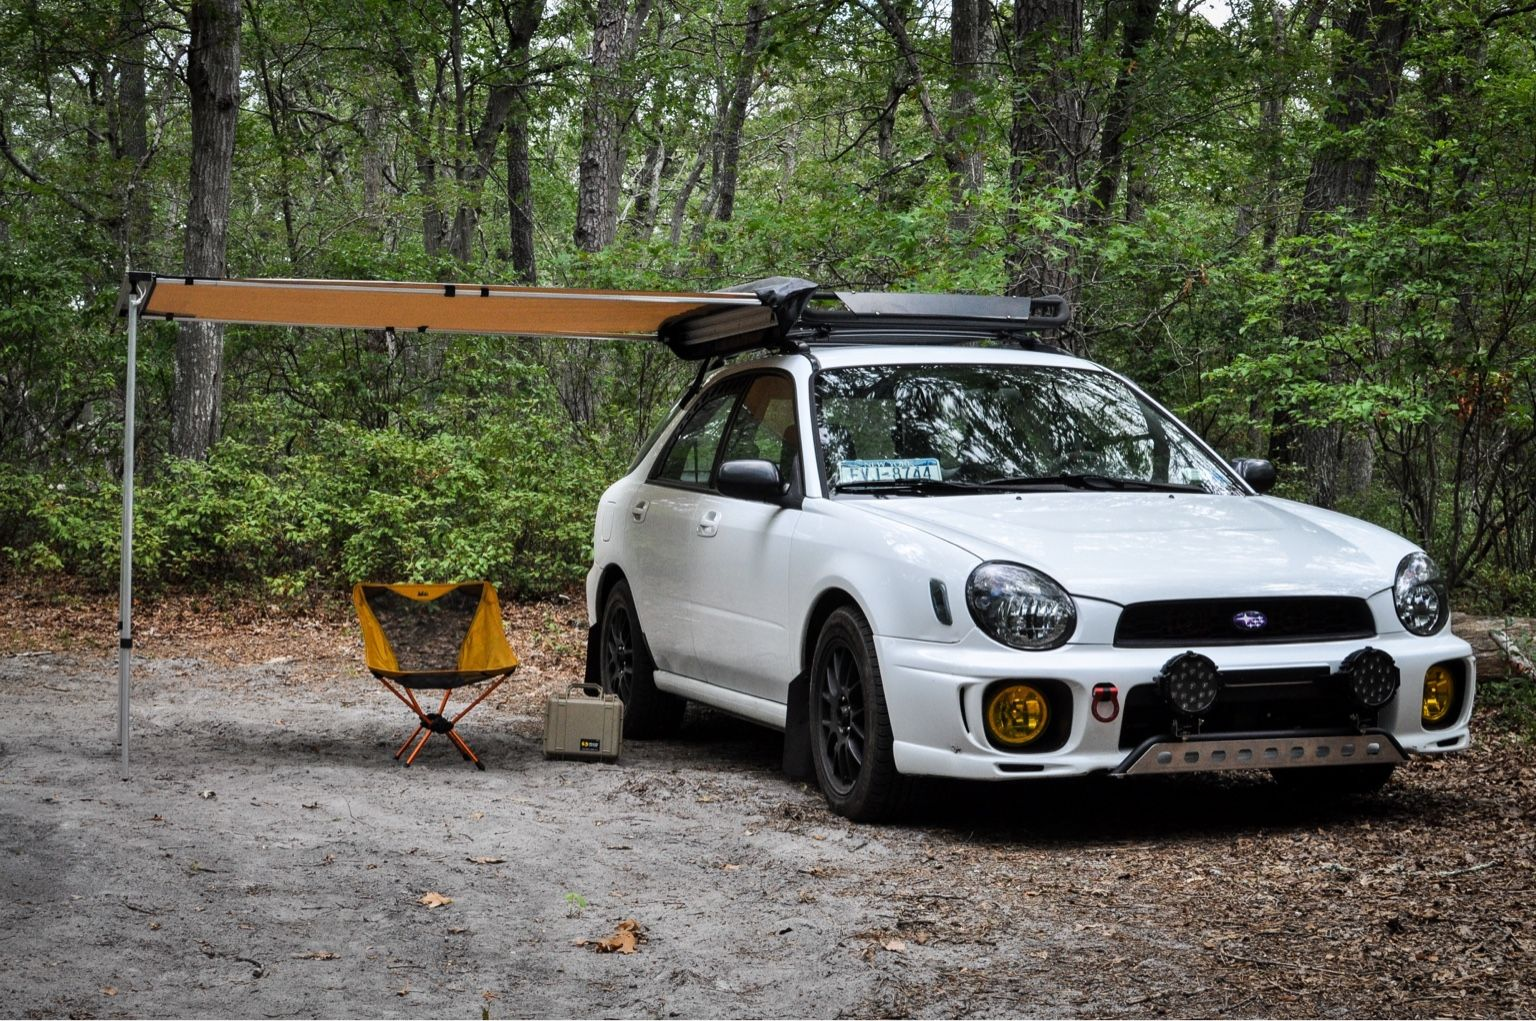 Pin By Nicole Mackenzie On Vehicles Wrx Wagon Subaru Wrx Wagon Subaru Cars